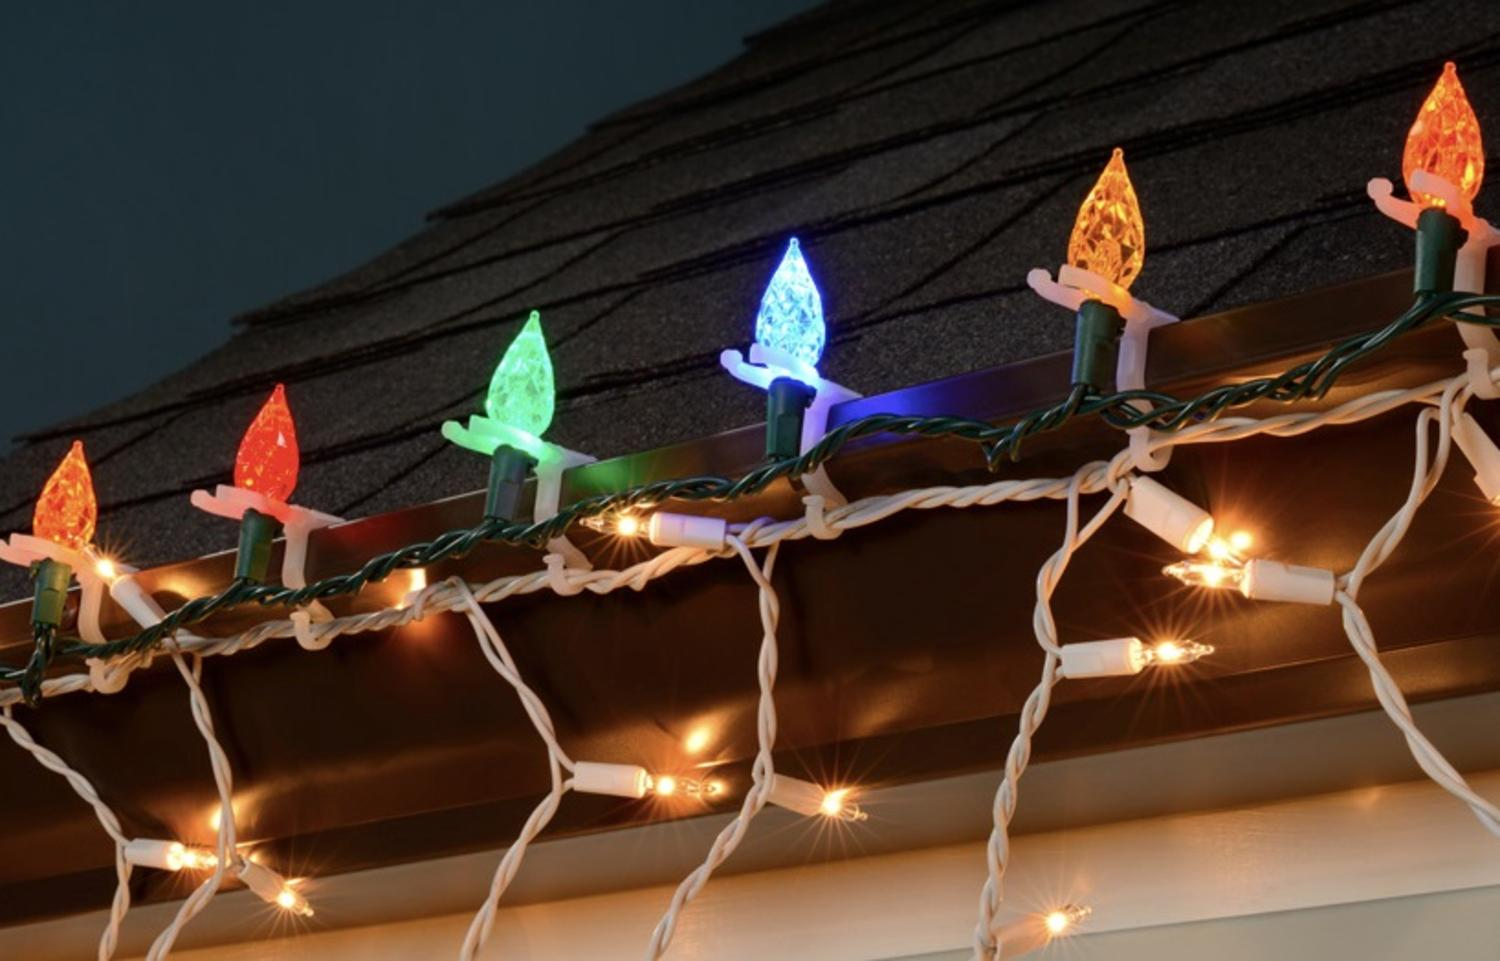 50ct All-Purpose Indoor/Outdoor Christmas Light Clips - Walmart.com